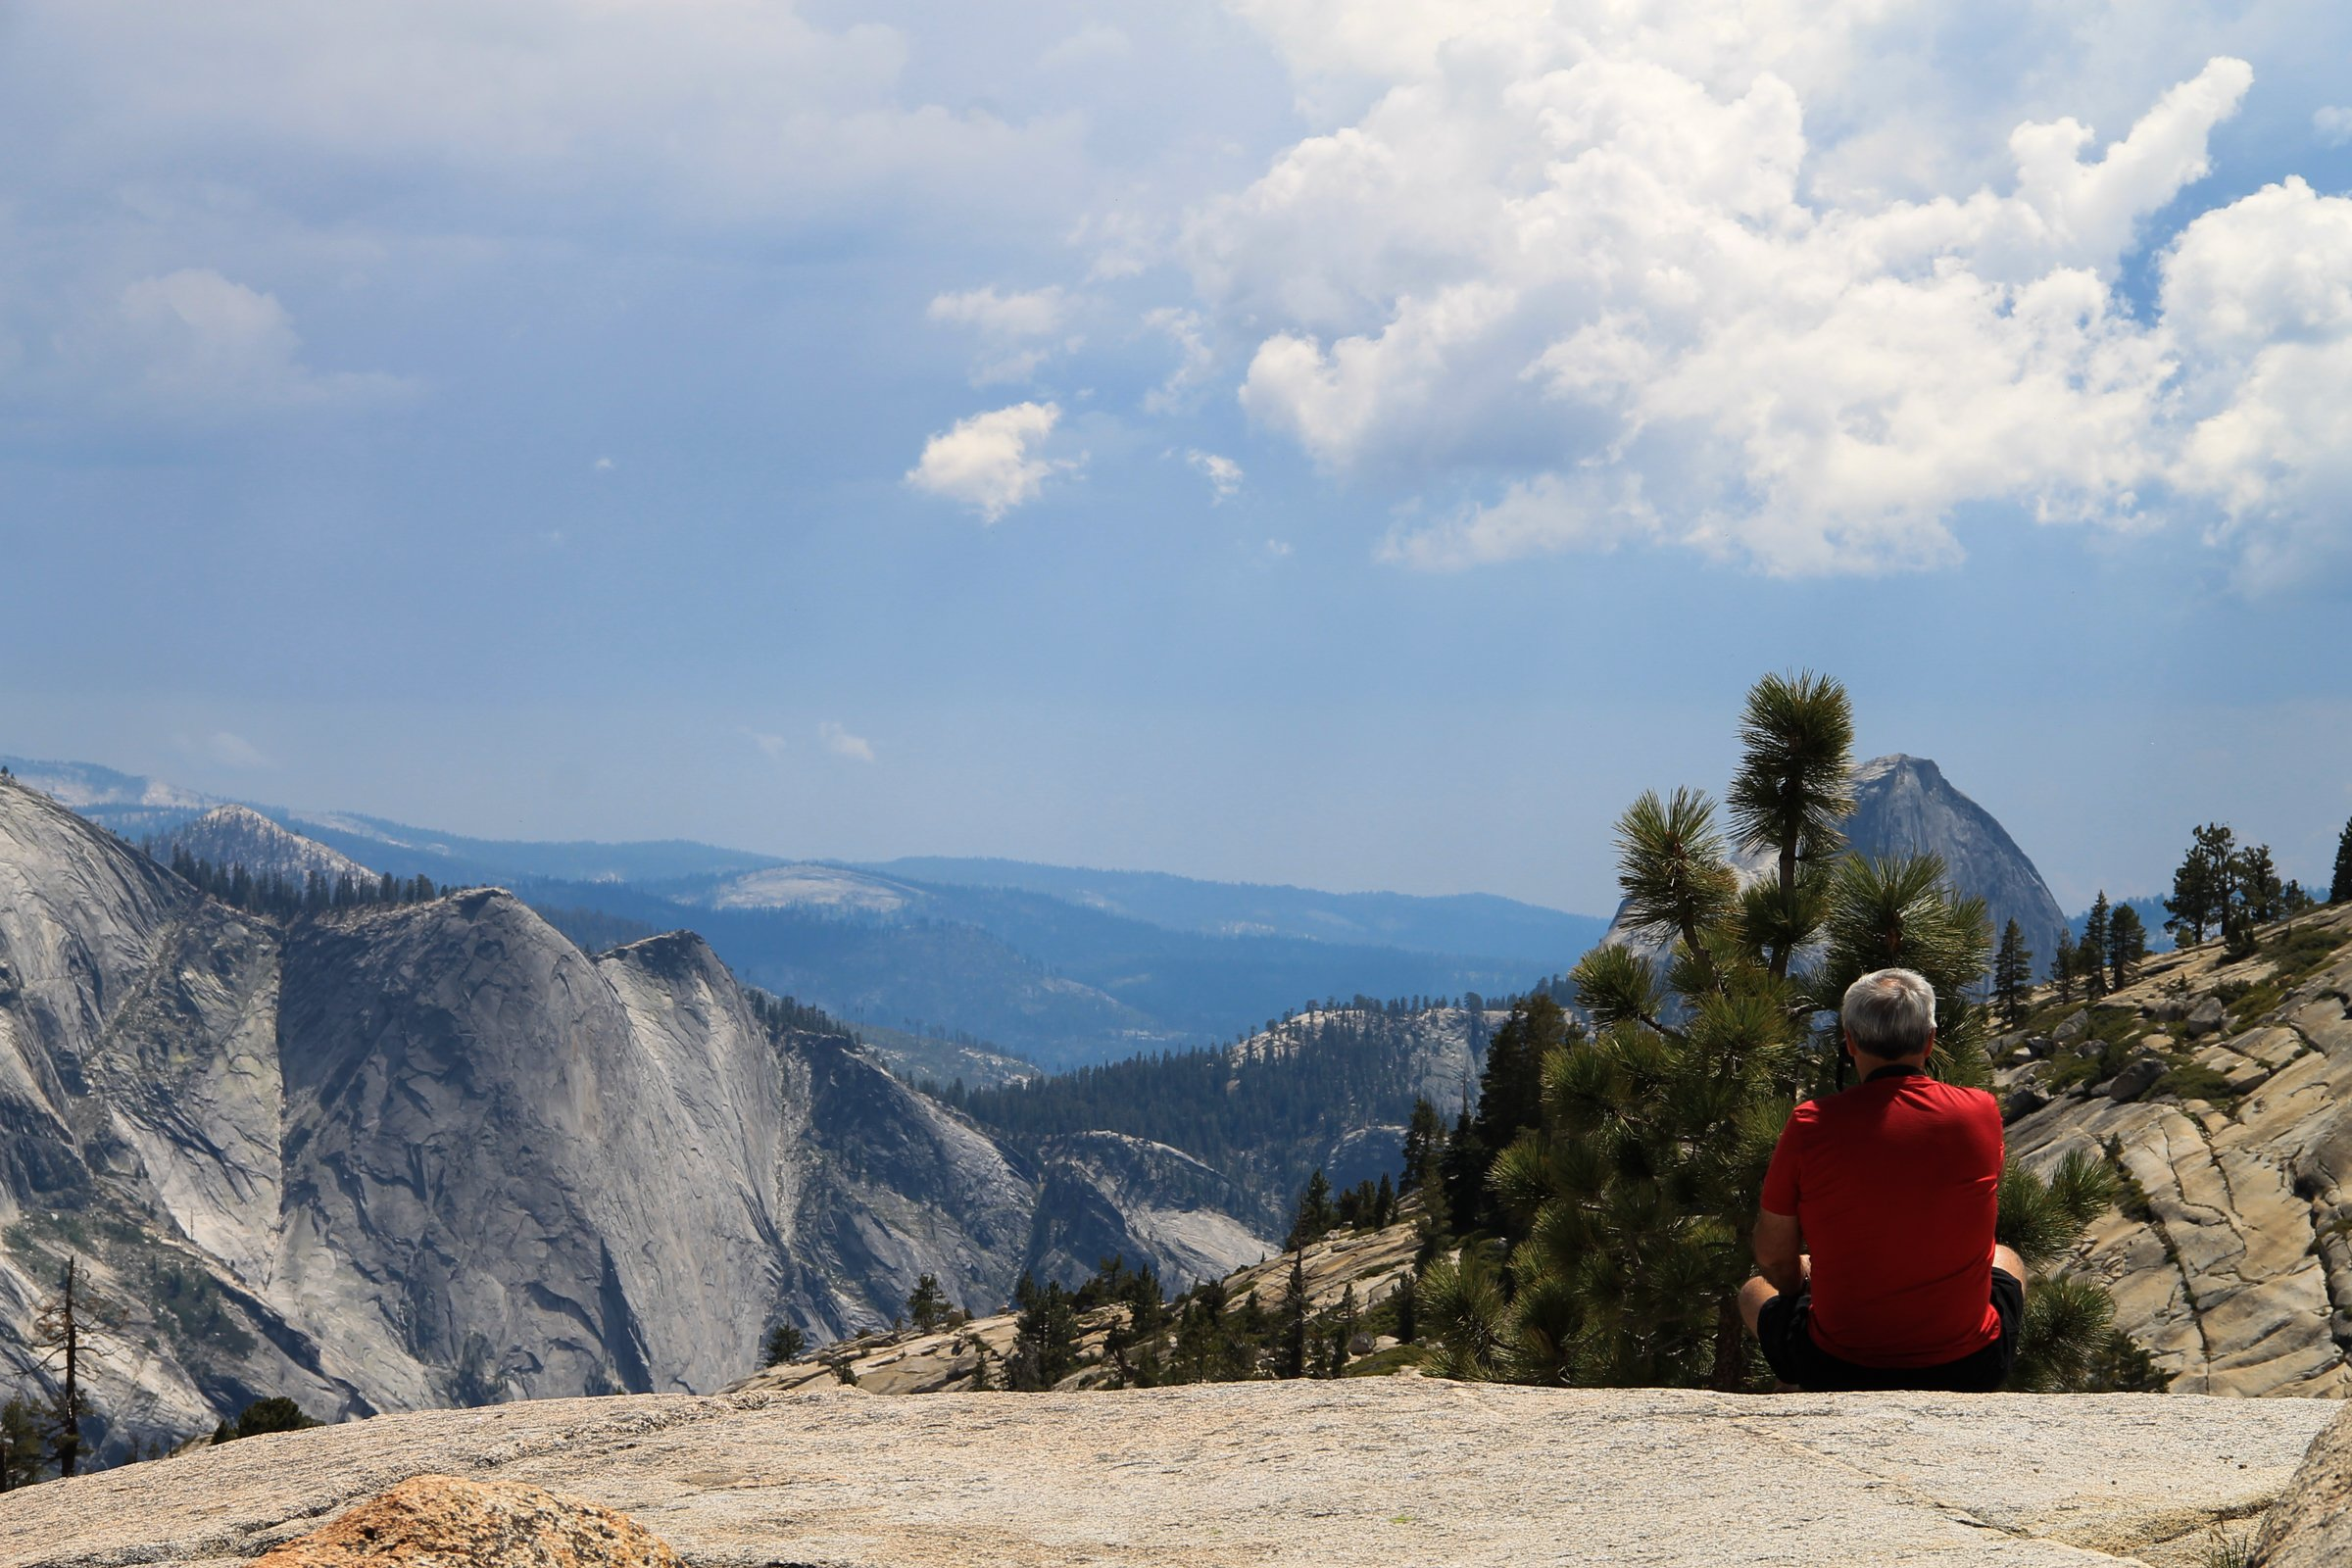 Elderly Man Sitting & Looking at Mountains